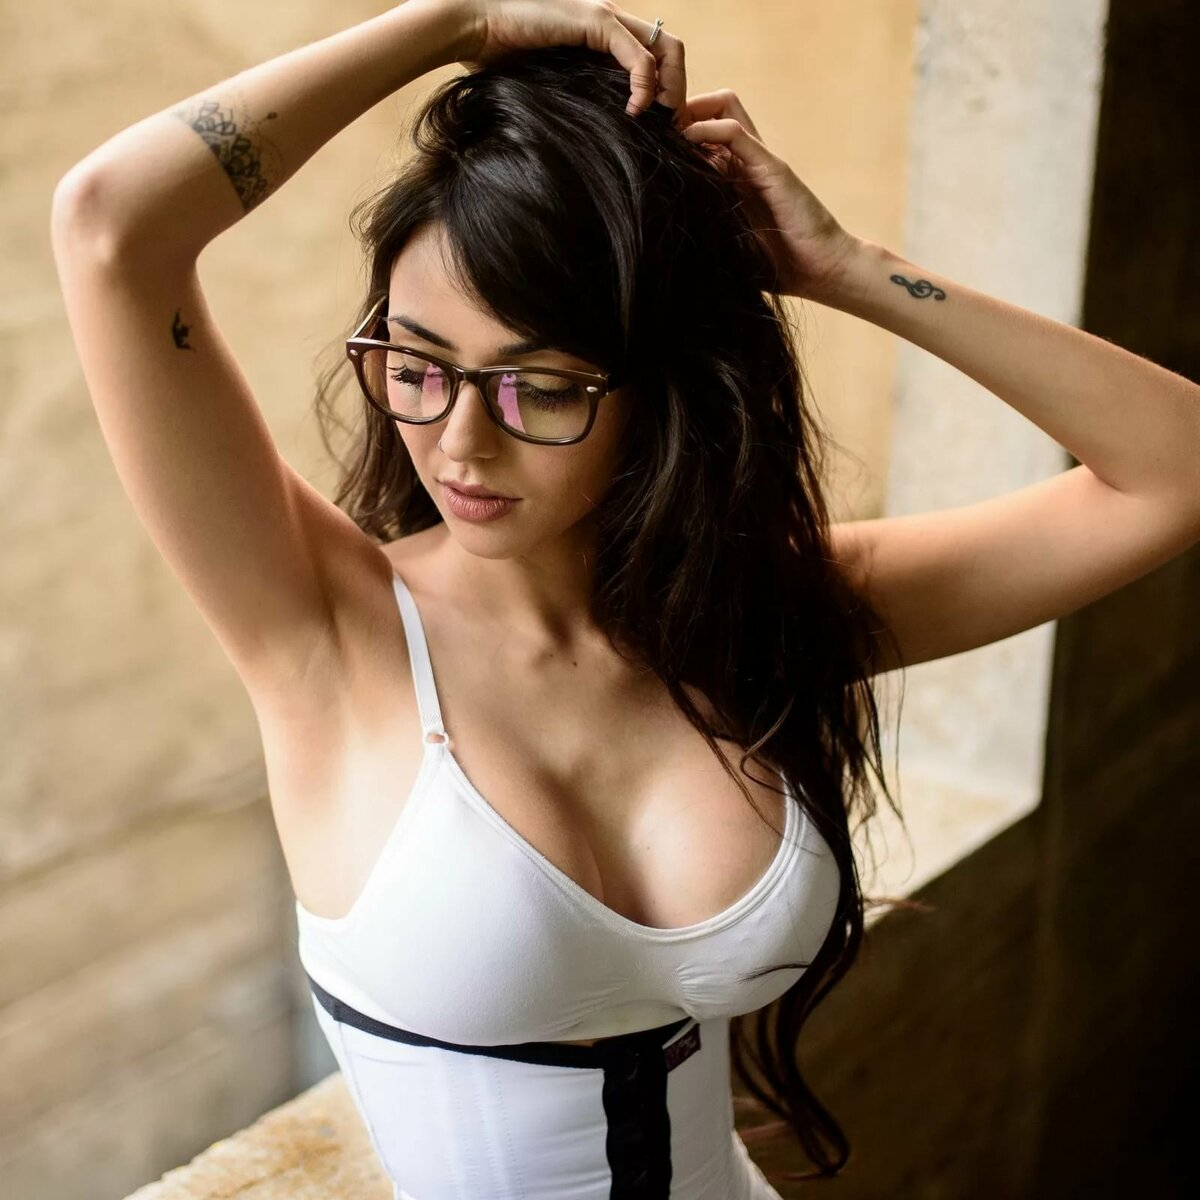 Brunette glasses petite big tits, lesbin sex games